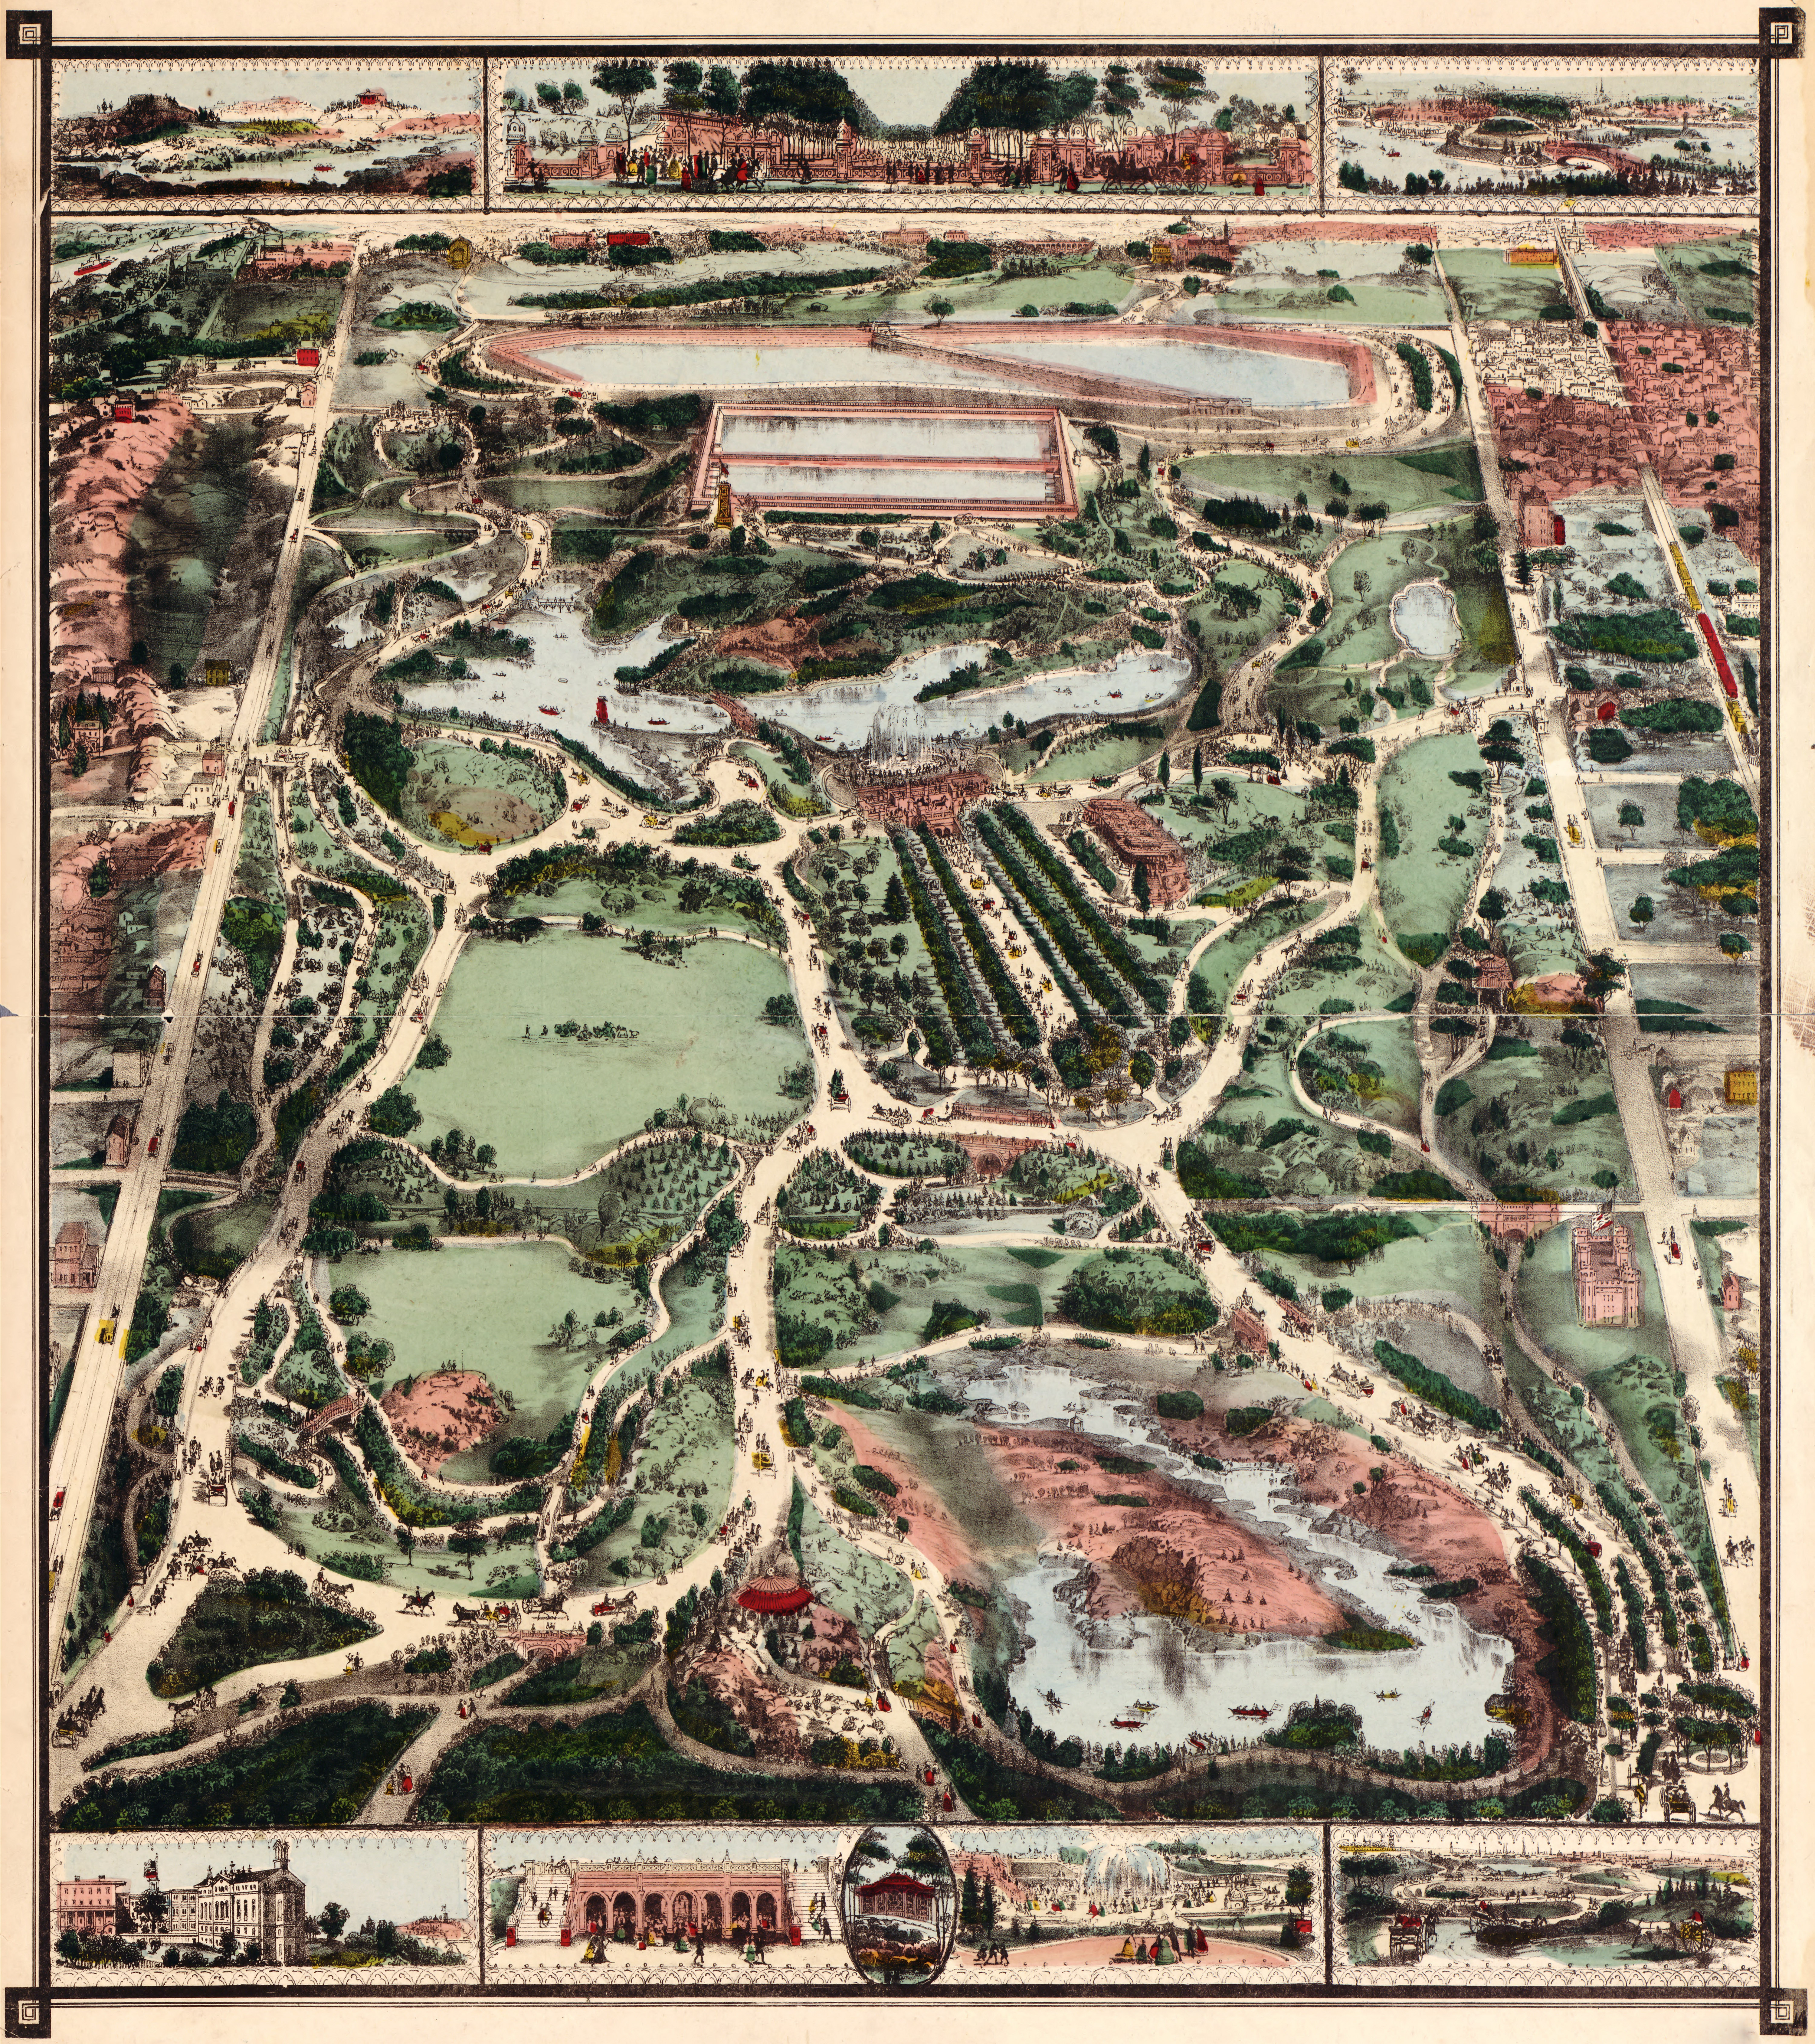 Vintage Infographic Map of New York City's Central Park (1860)